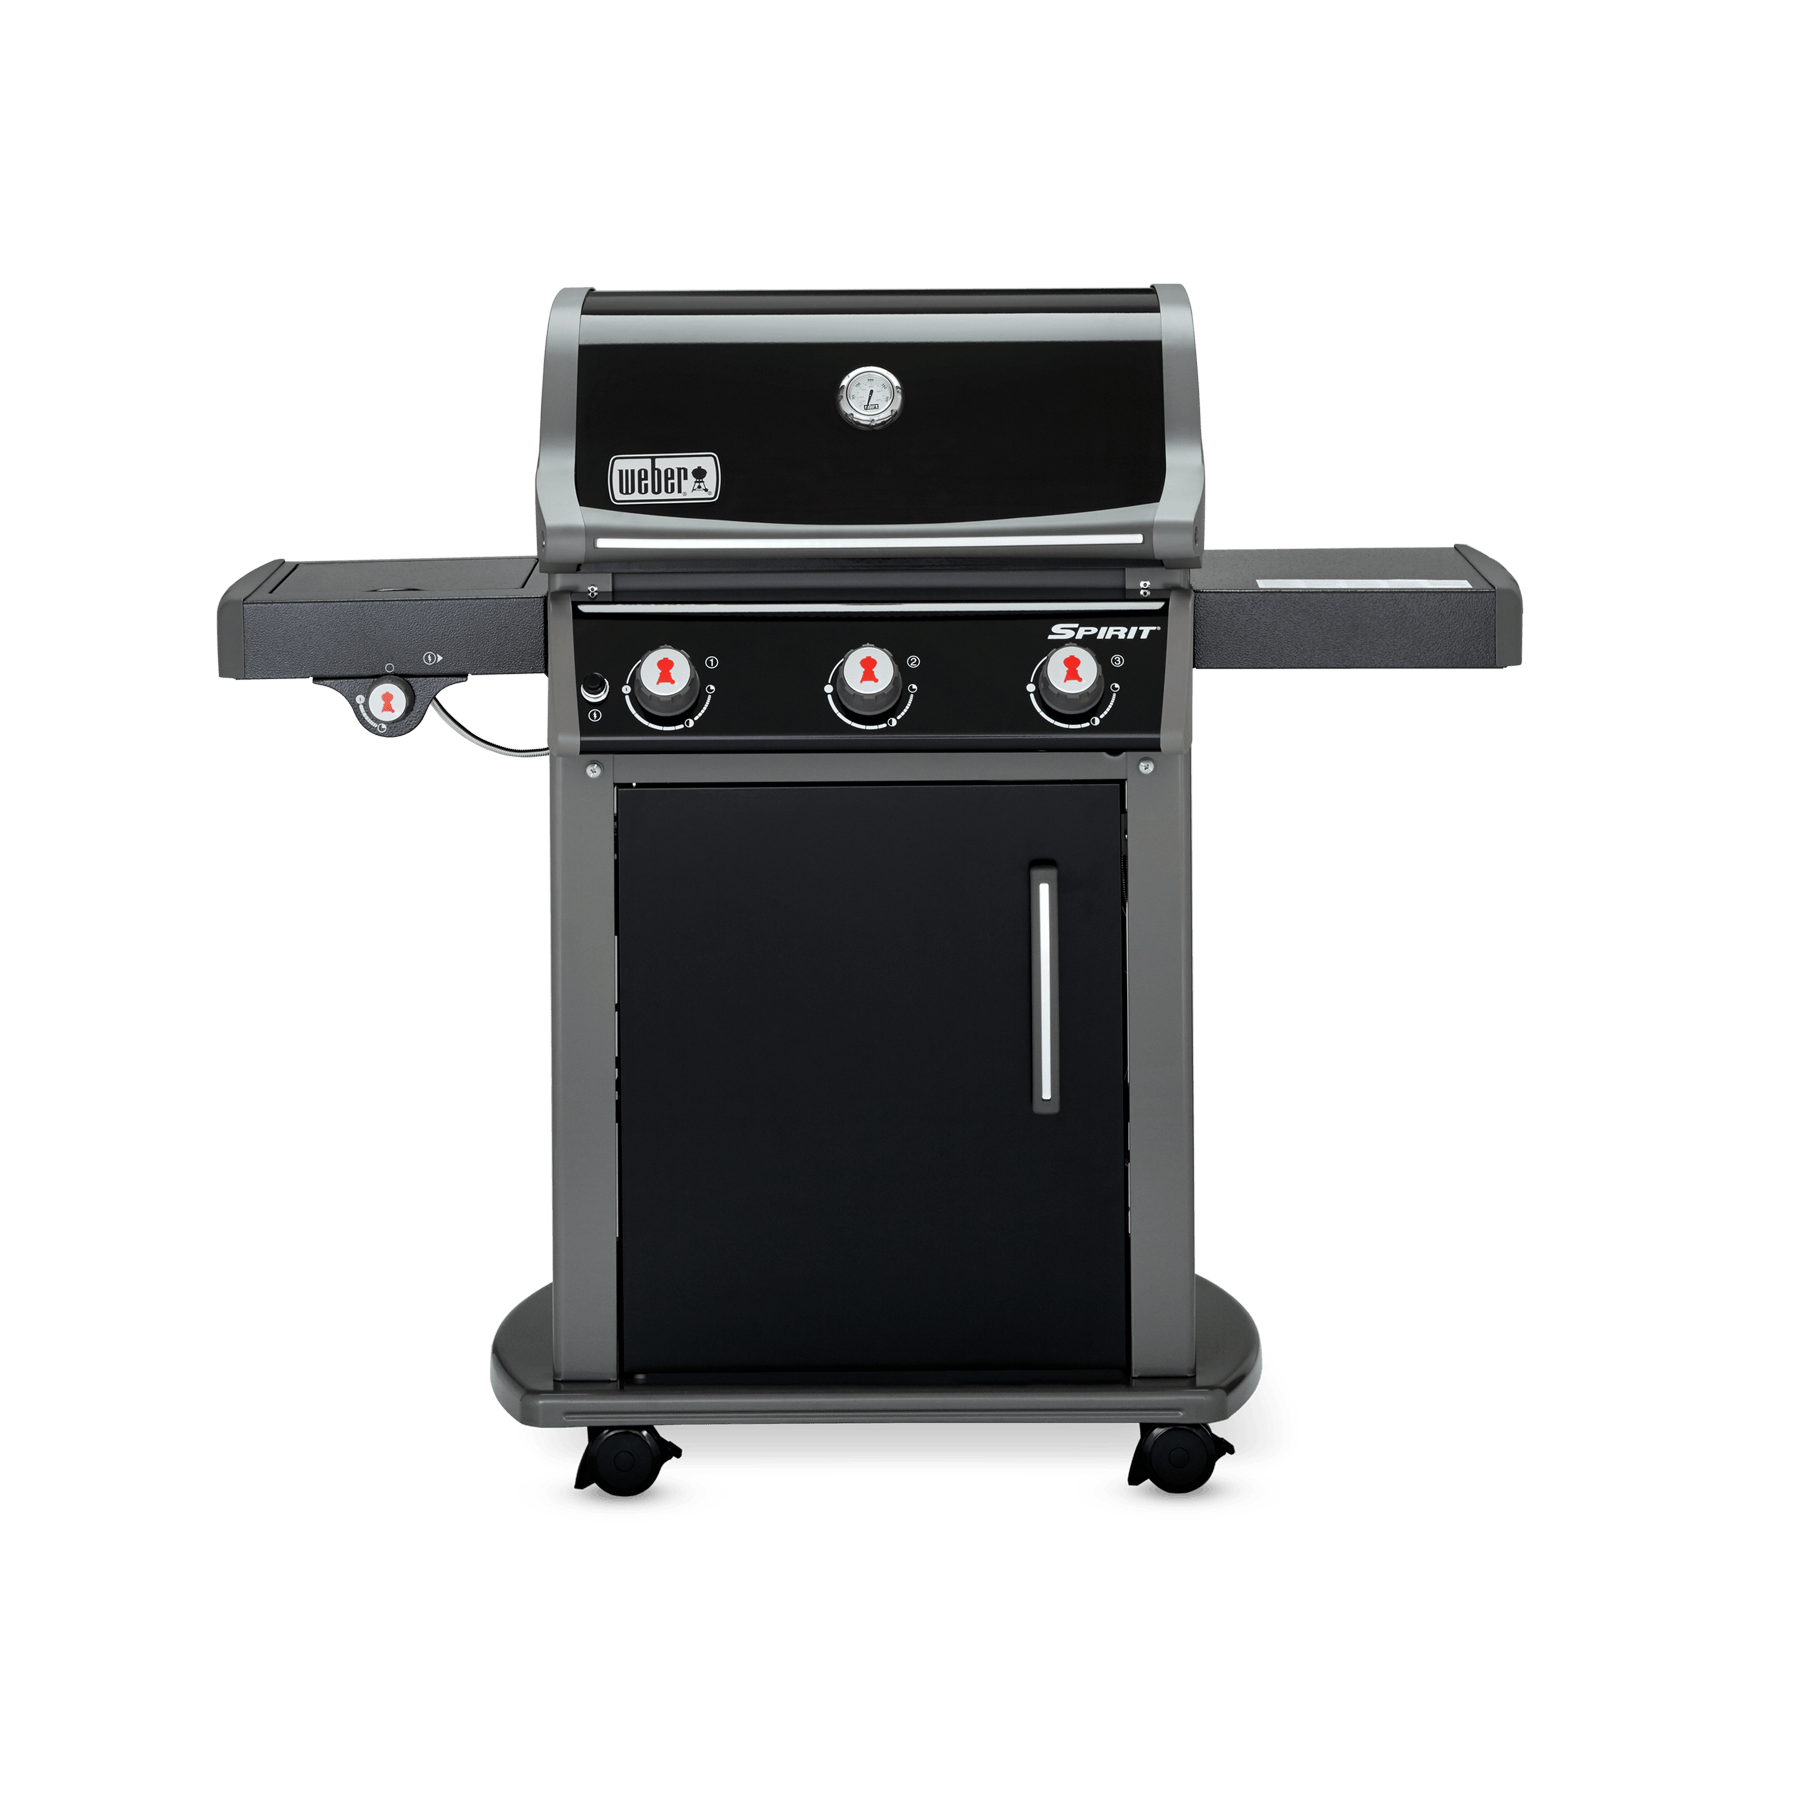 Spirit Original E 320 Gbs Gas Barbecue Gas Grill Reviews Gas Grill Best Gas Grills